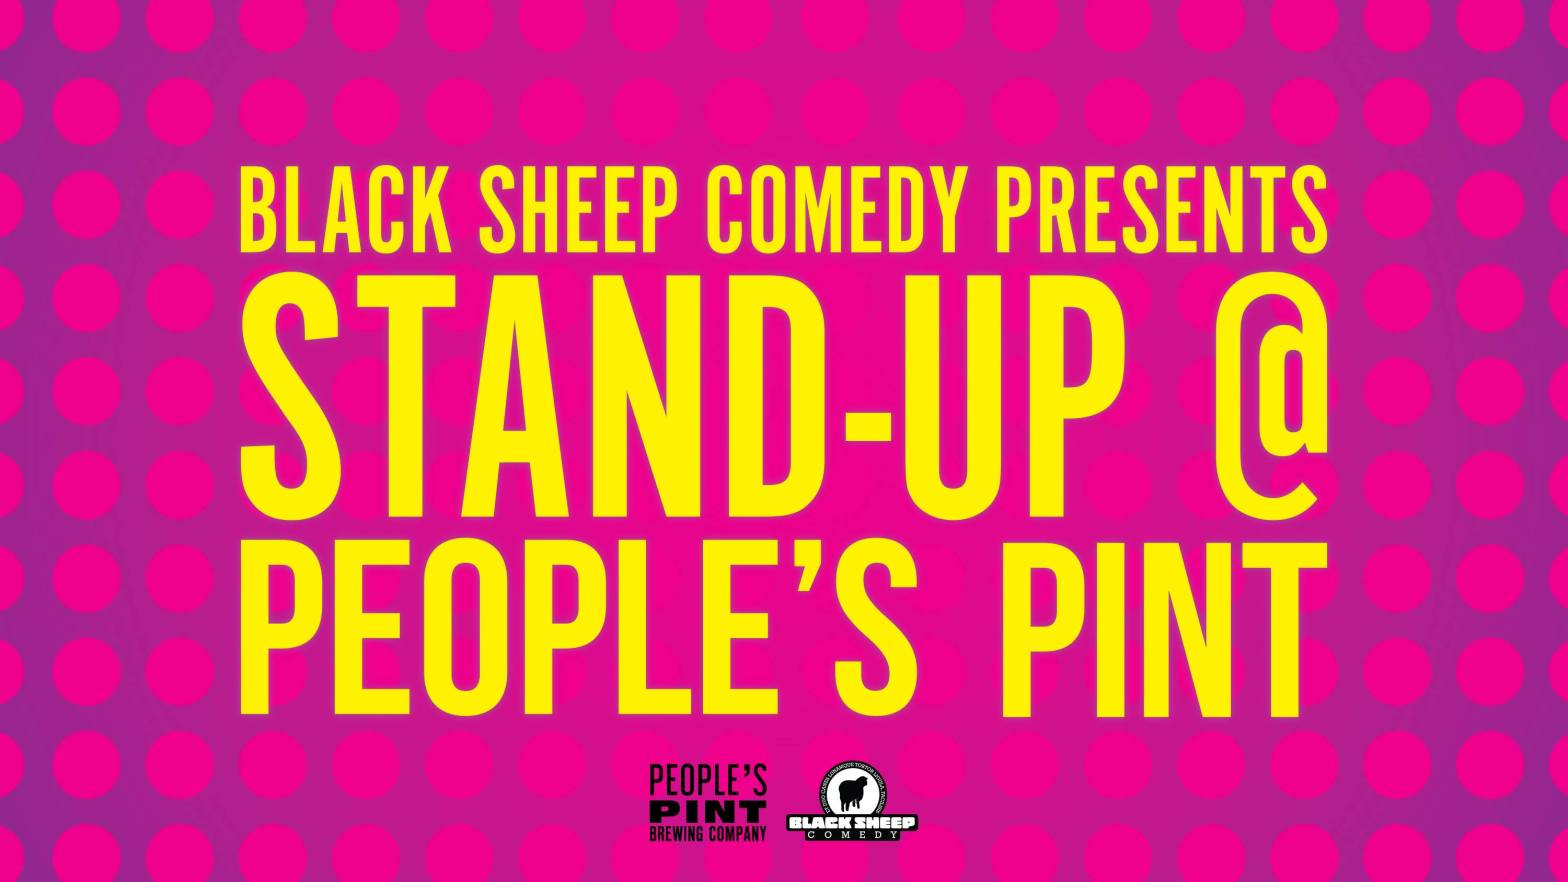 Black Sheep Comedy's Stand Up @ People's Pint in The Junction, Toronto